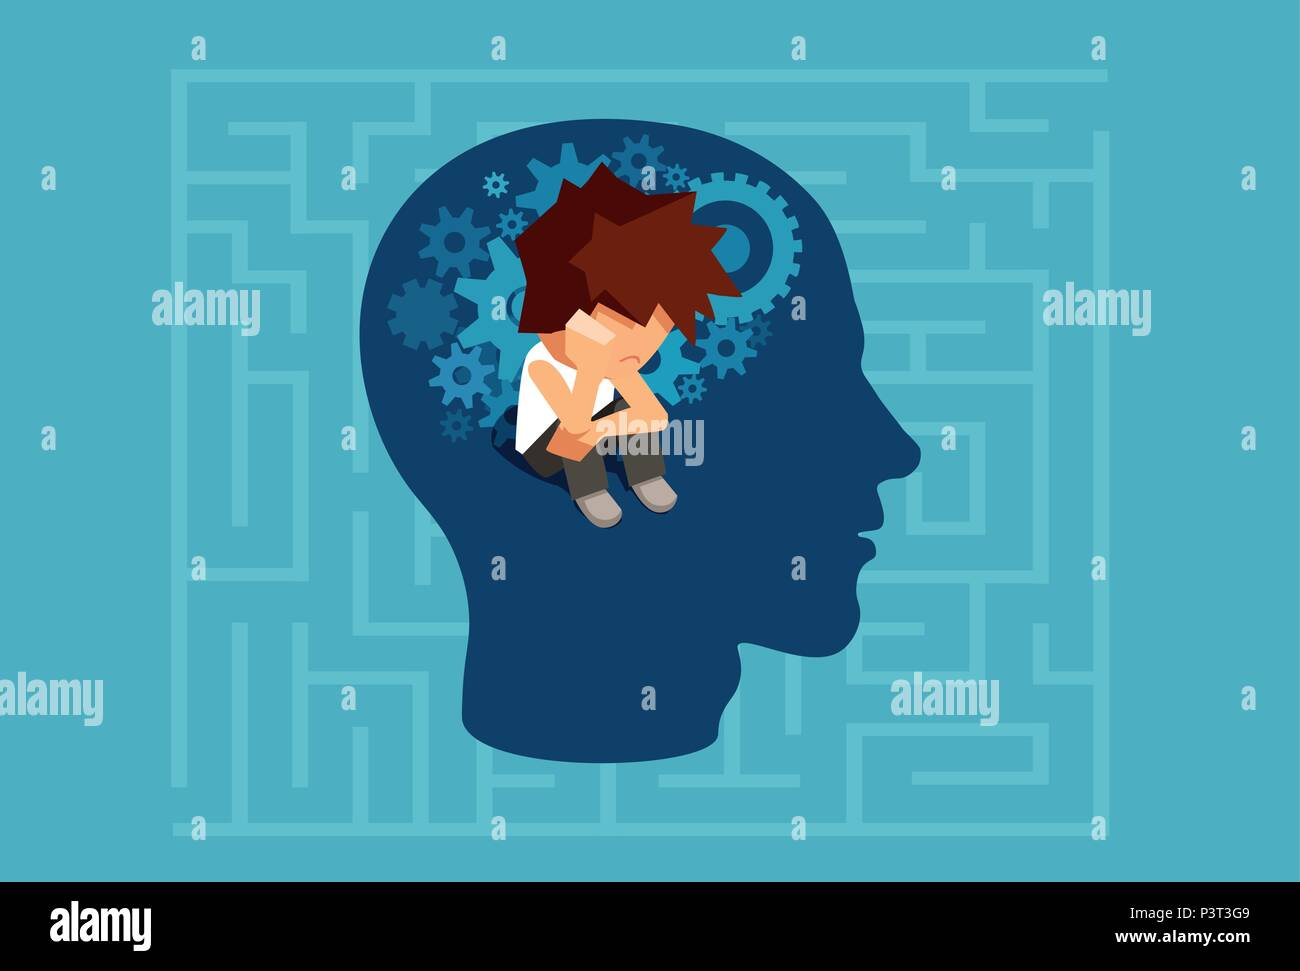 Vector of a child subconscious mind of an adult man concept - Stock Image